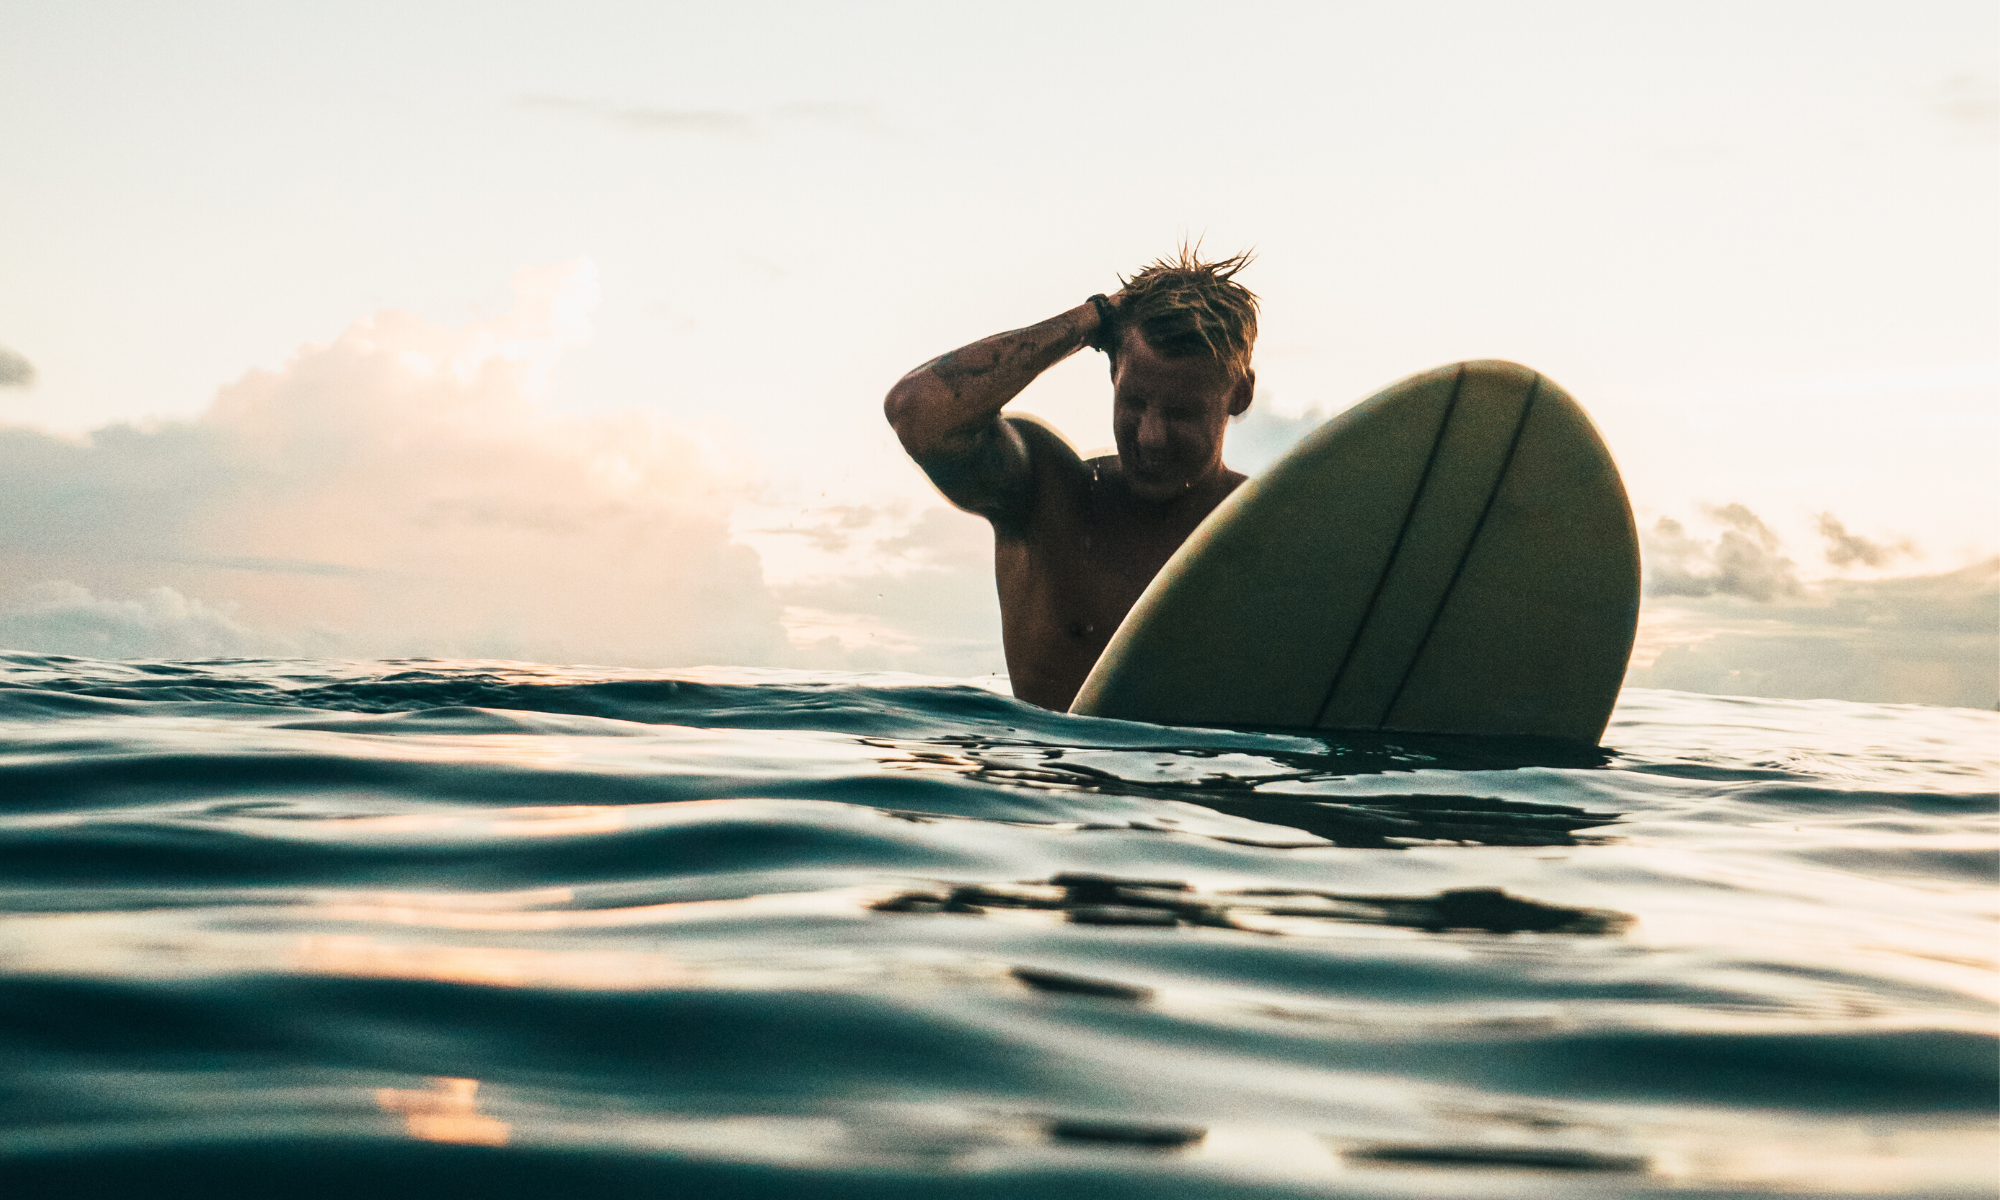 How a former city slicker replaced his morning commute with a morning surf